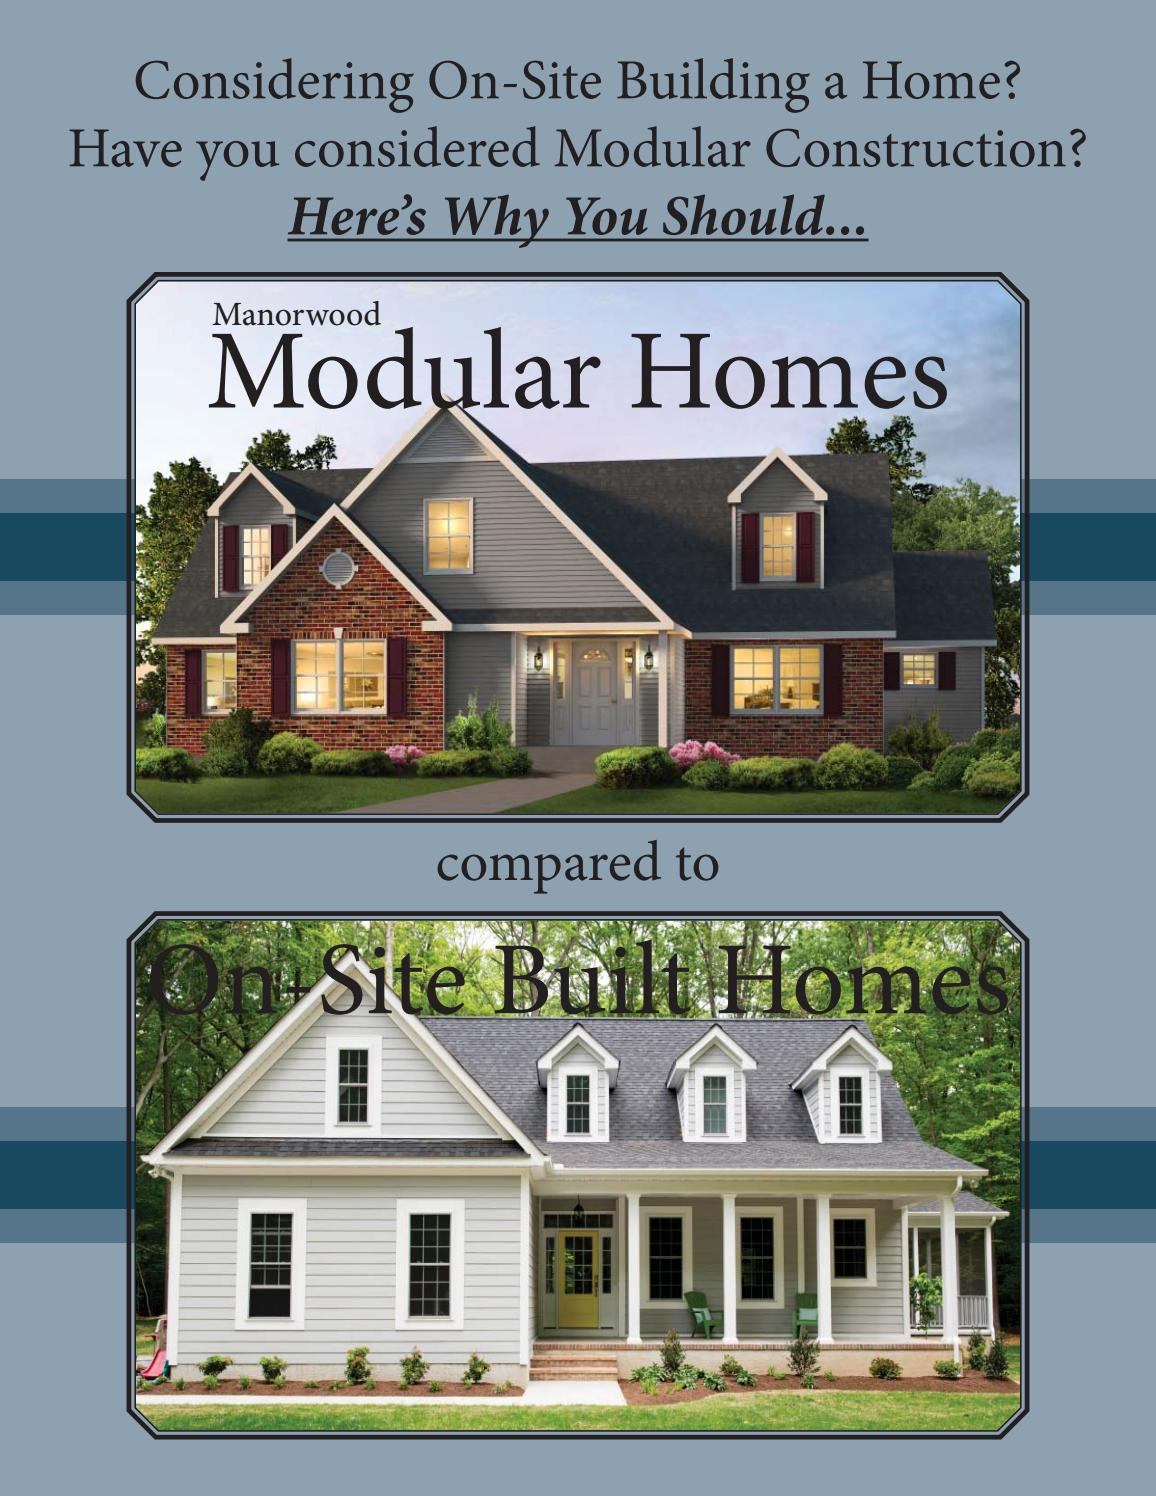 Manorwood homes mod vs on site built by the commodore - Modular home vs stick built ...